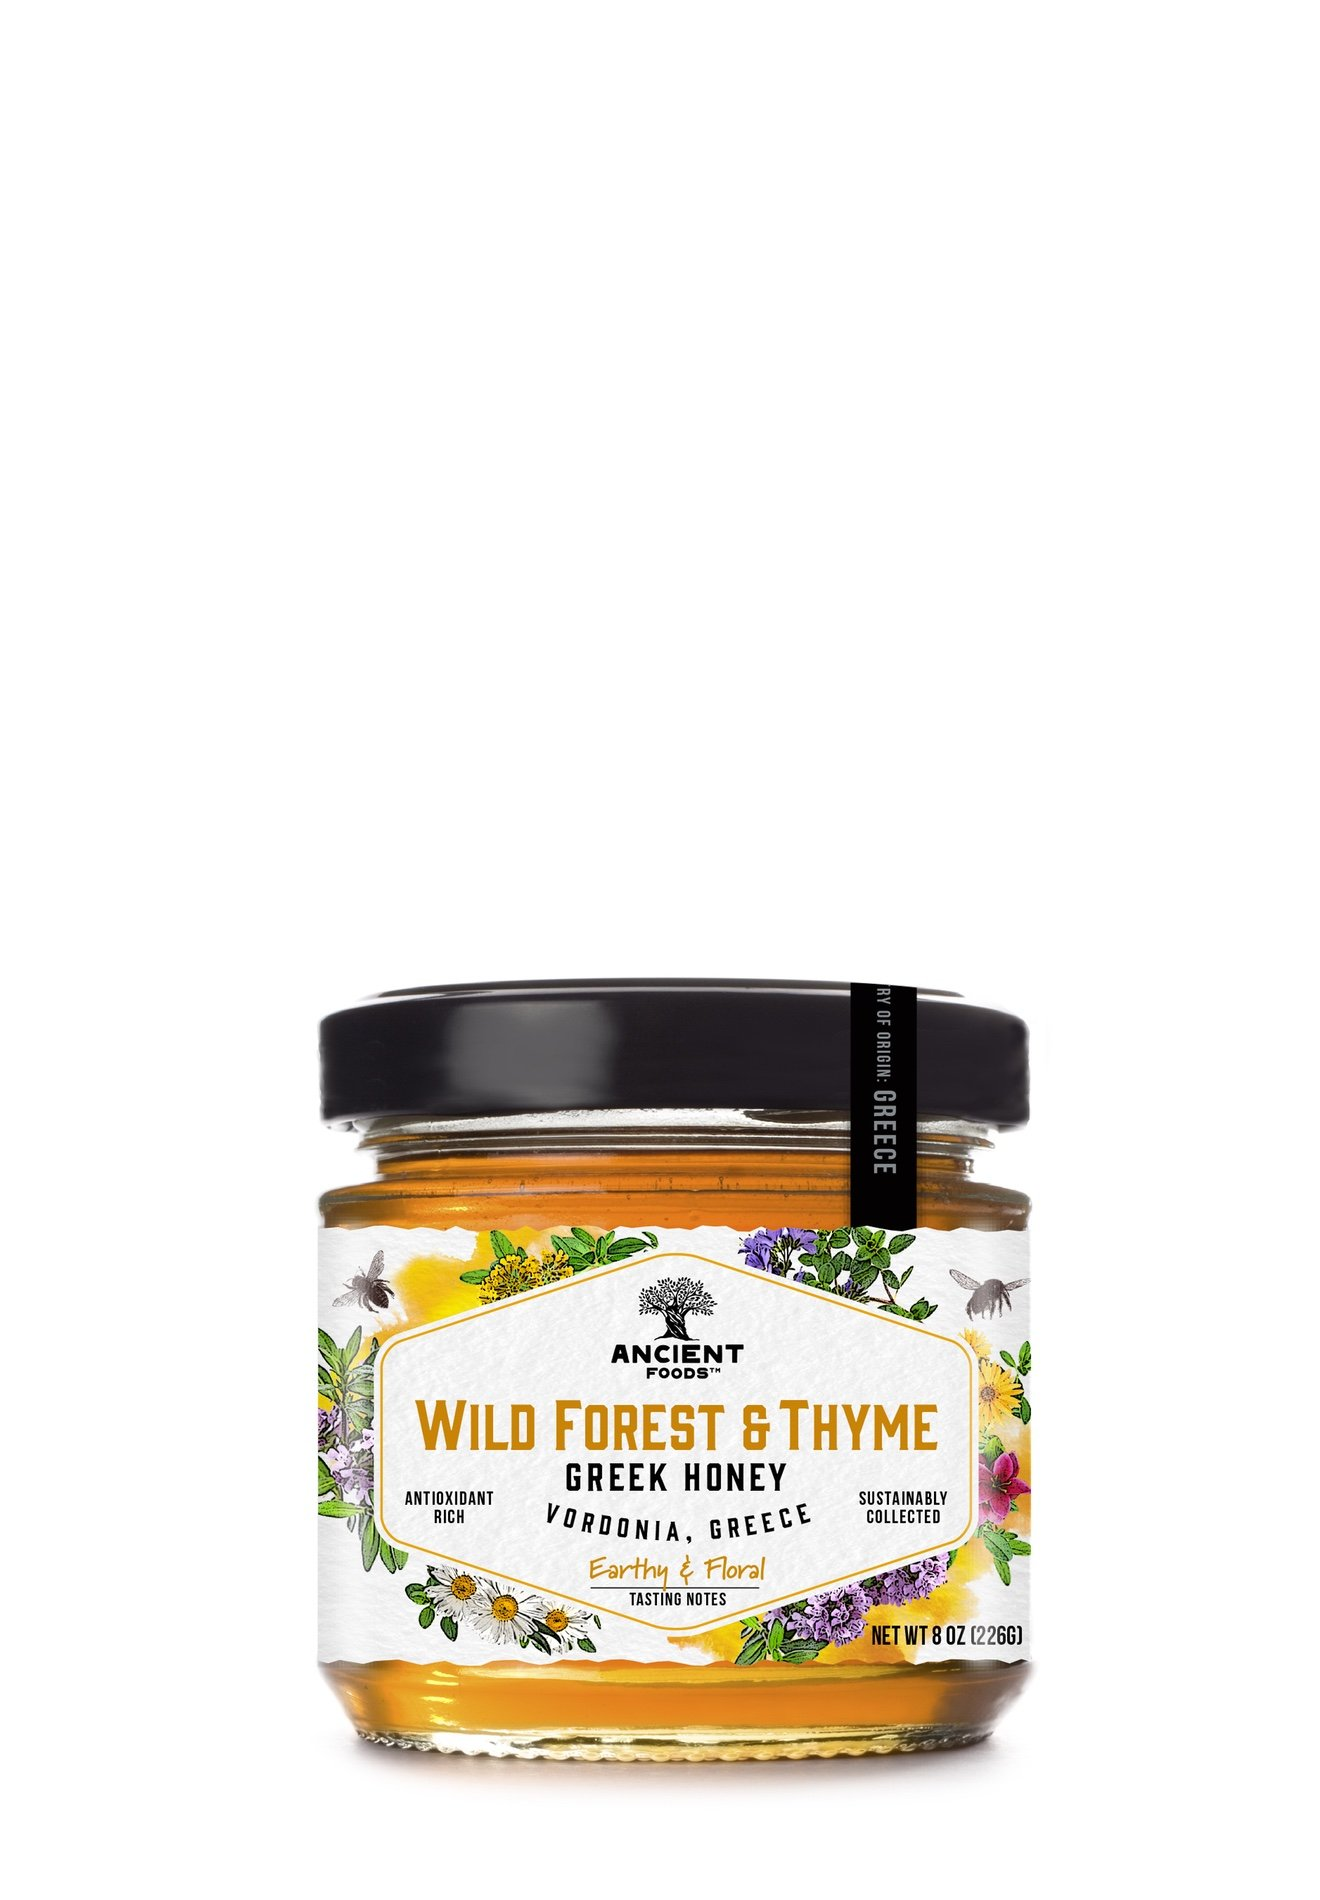 Jar of Wild Forest and Thyme Honey